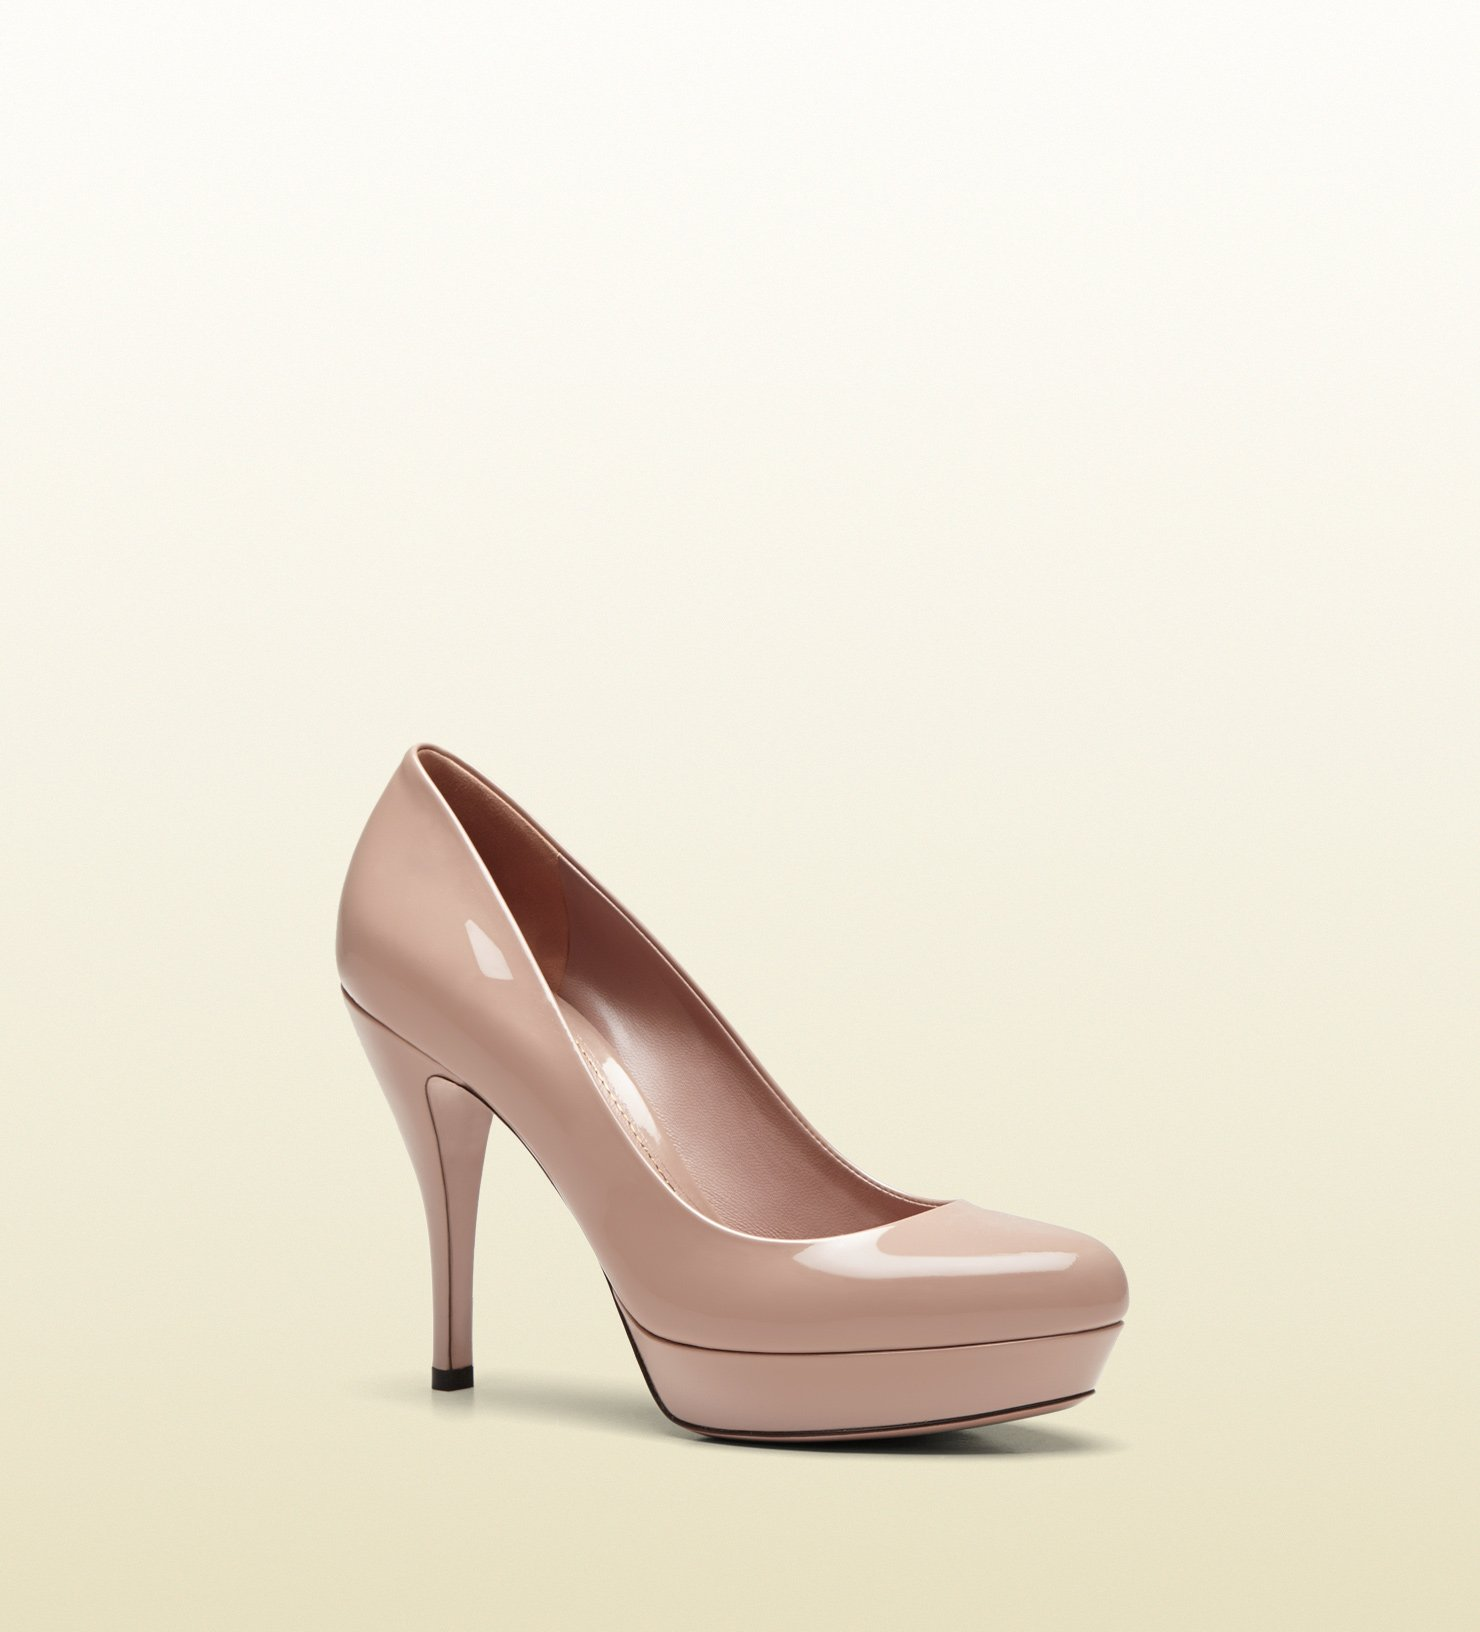 Pink Women's Heels: nakedprogrammzce.cf - Your Online Women's Shoes Store! Get 5% in rewards with Club O! Women's Pleaser Sexy 42 Peep Toe Pump Nude Patent. SALE ends soon ends in 23 hours. Quick View. Sale $ Was $ $ OFF. Women's Funtasma Saddle 48 Baby Pink/White Patent. SALE ends soon ends in 23 hours.